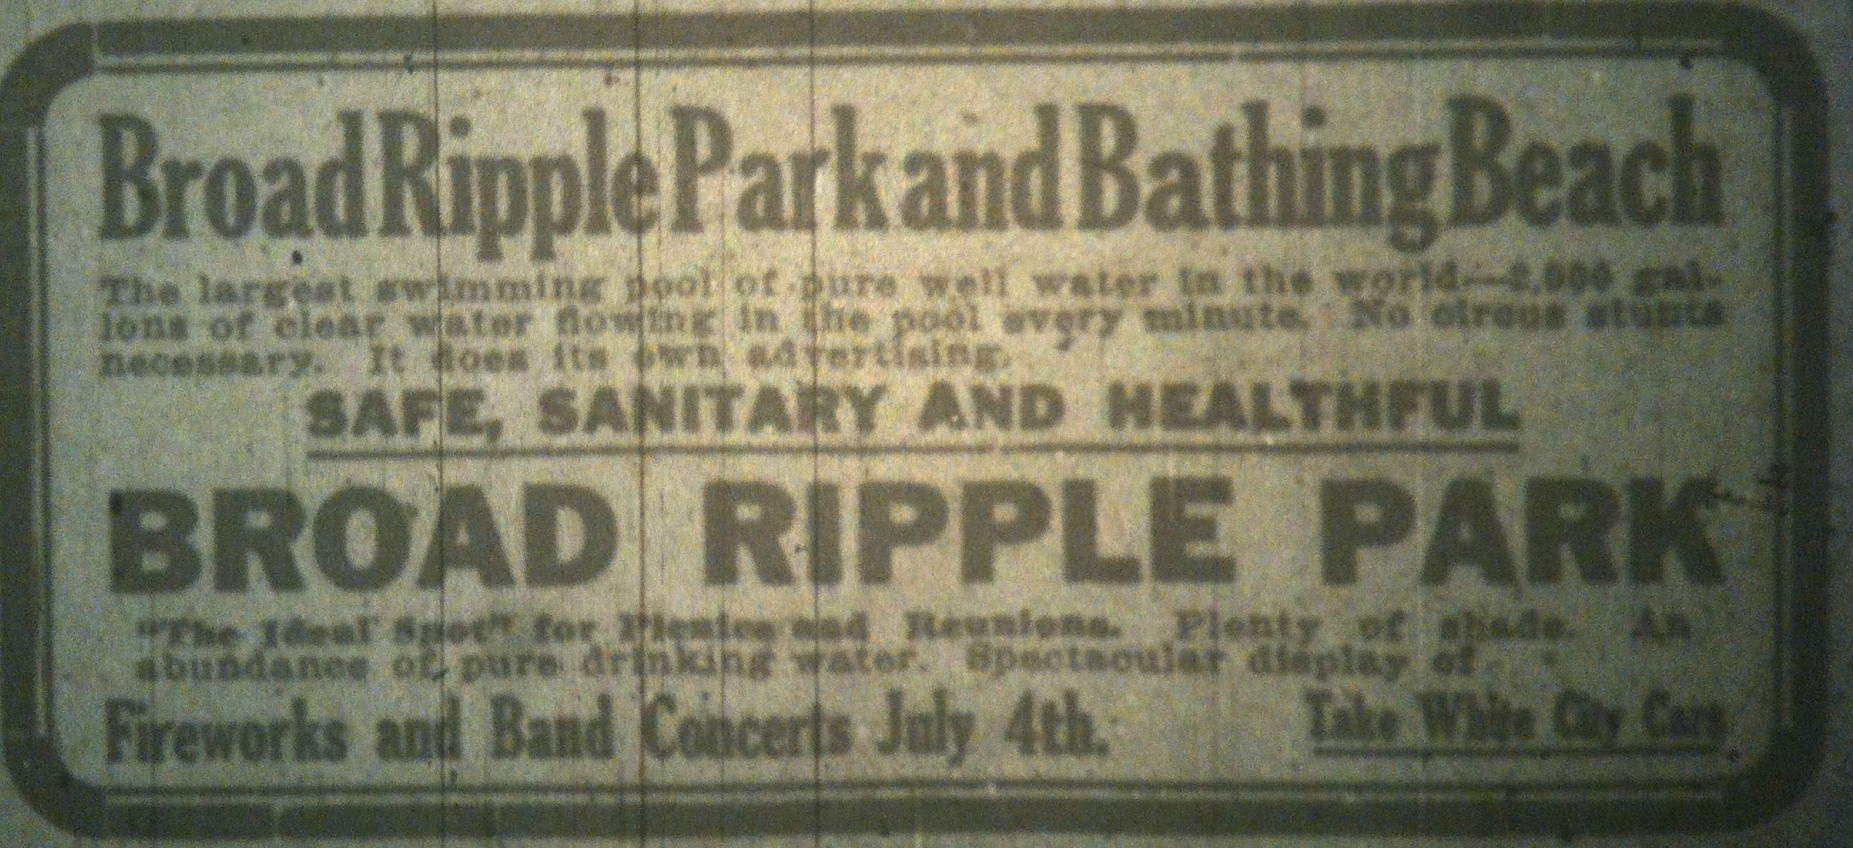 Sunday Adverts: Come cool down in Broad Ripple Park in 1910